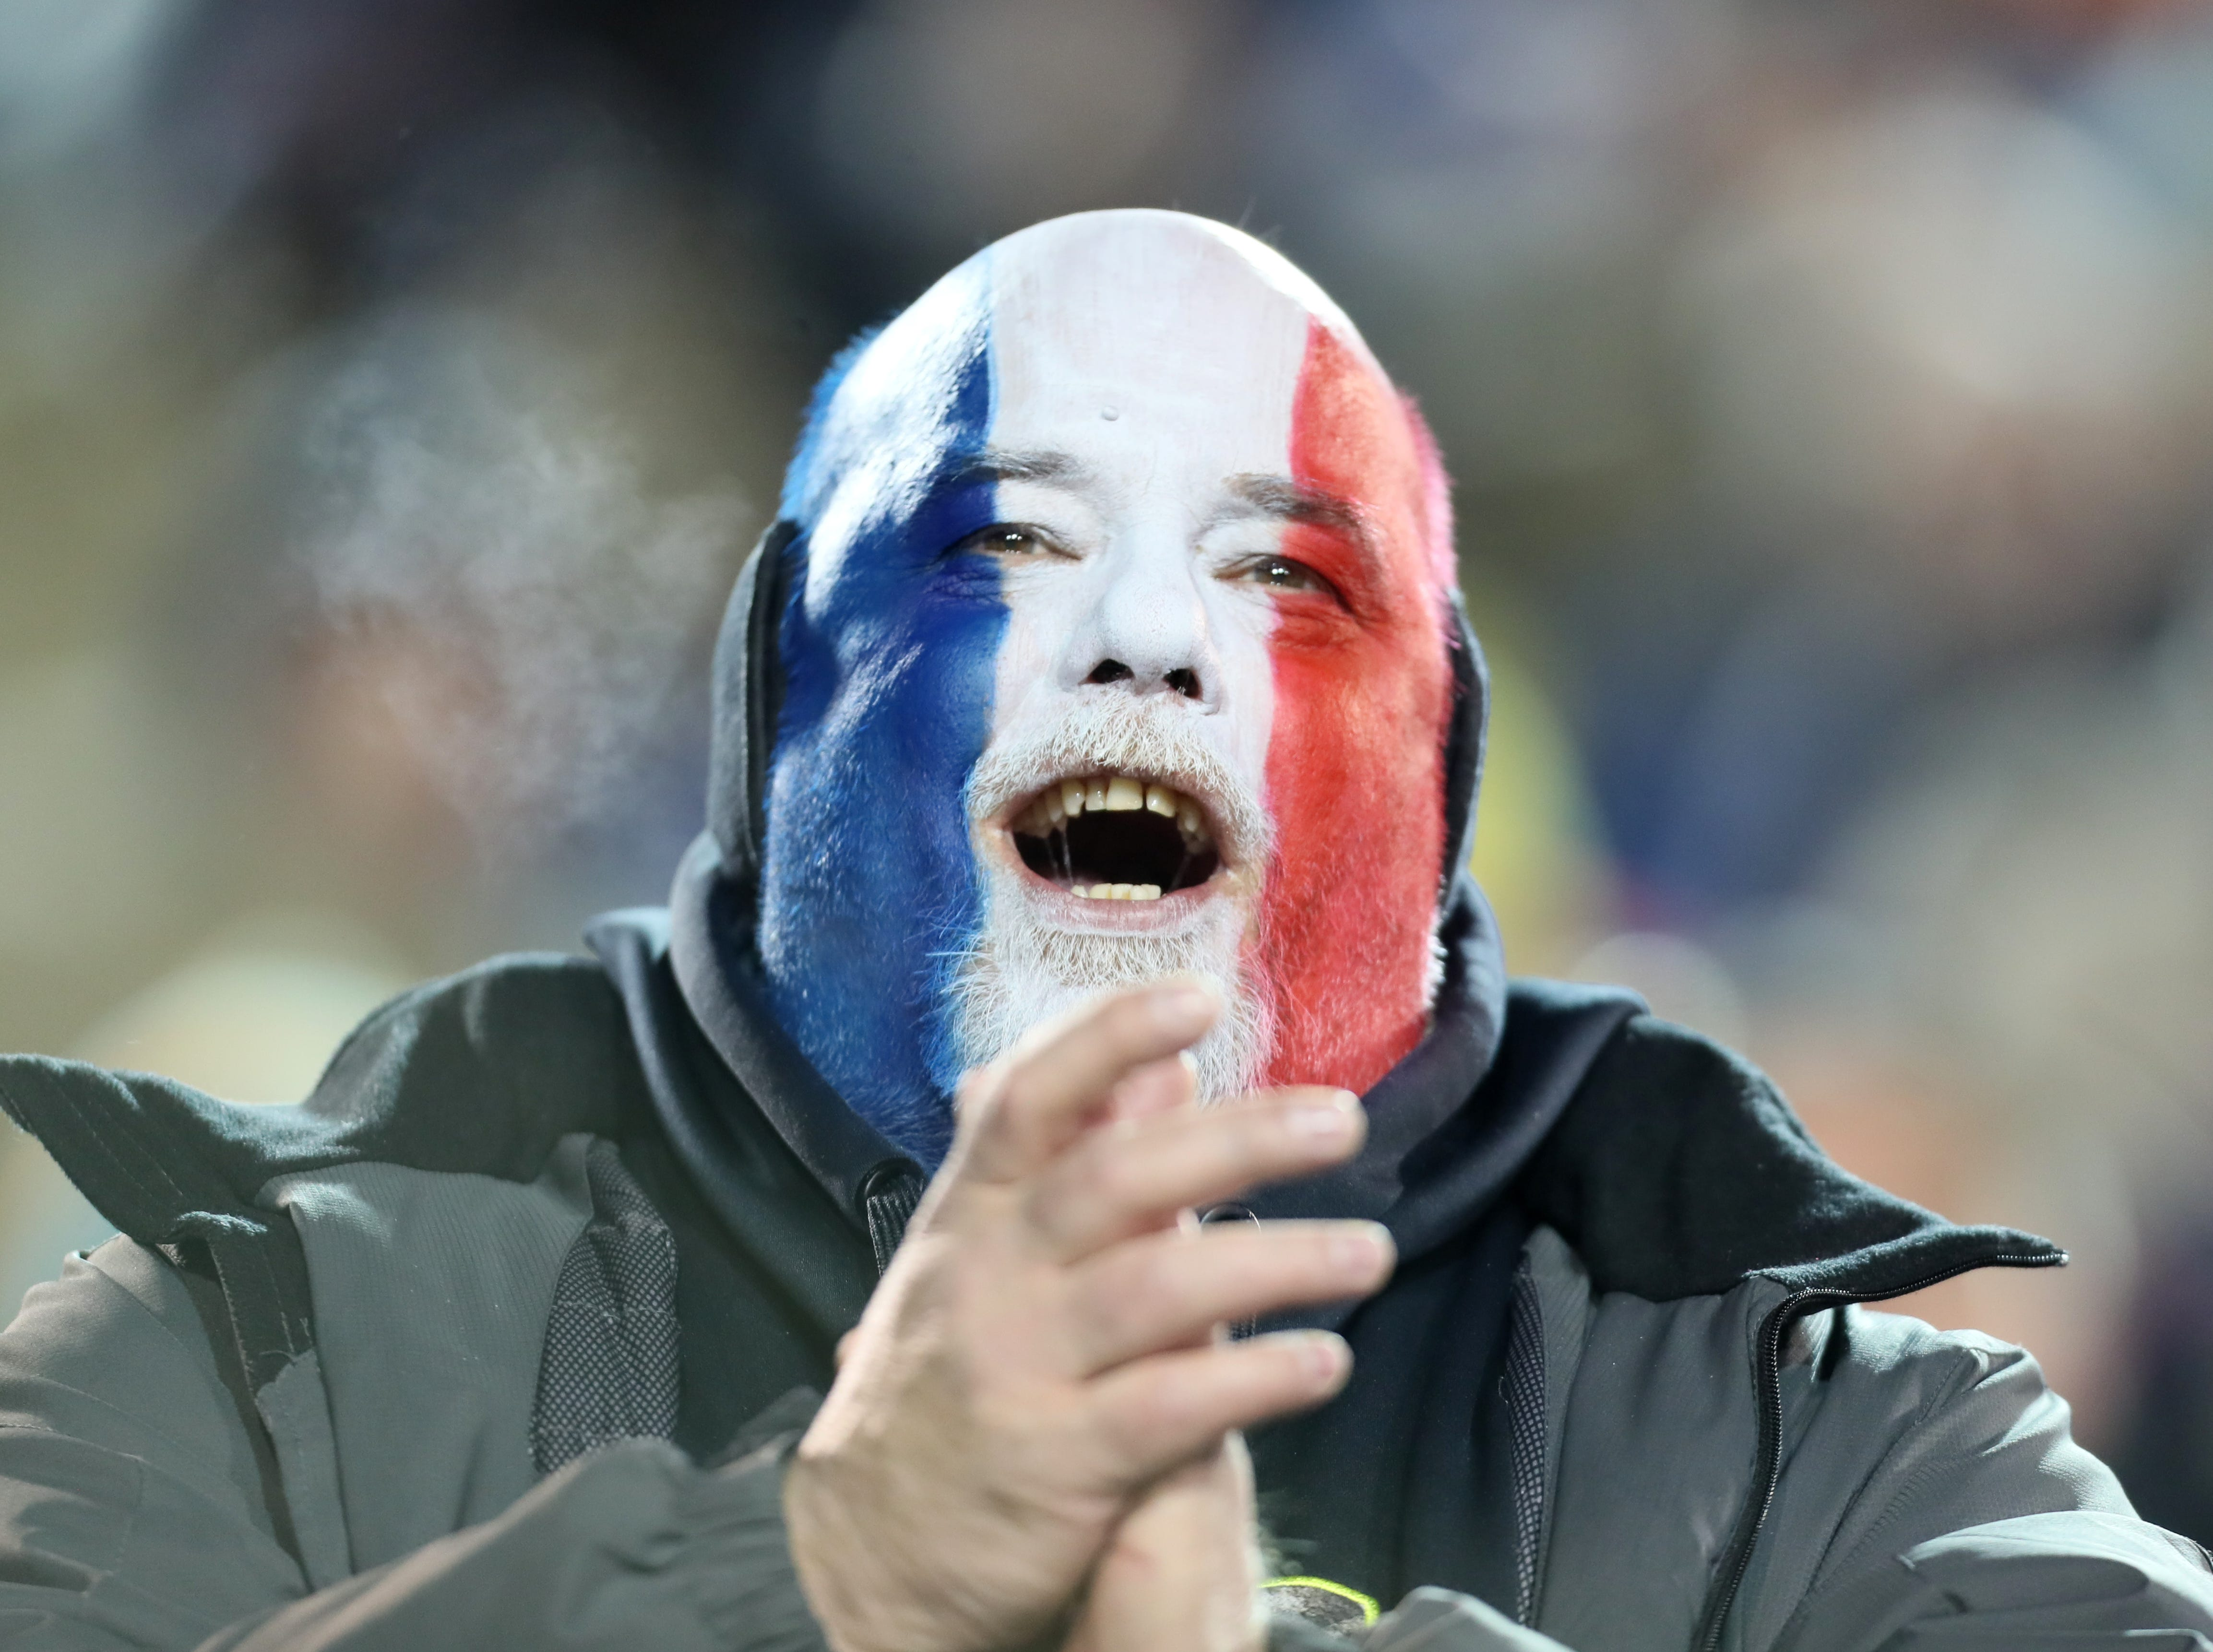 A Memphis Express fan cheers on his team as they take on the Arizona Hotshots at the Liberty Bowl on Saturday, Feb. 16, 2019.